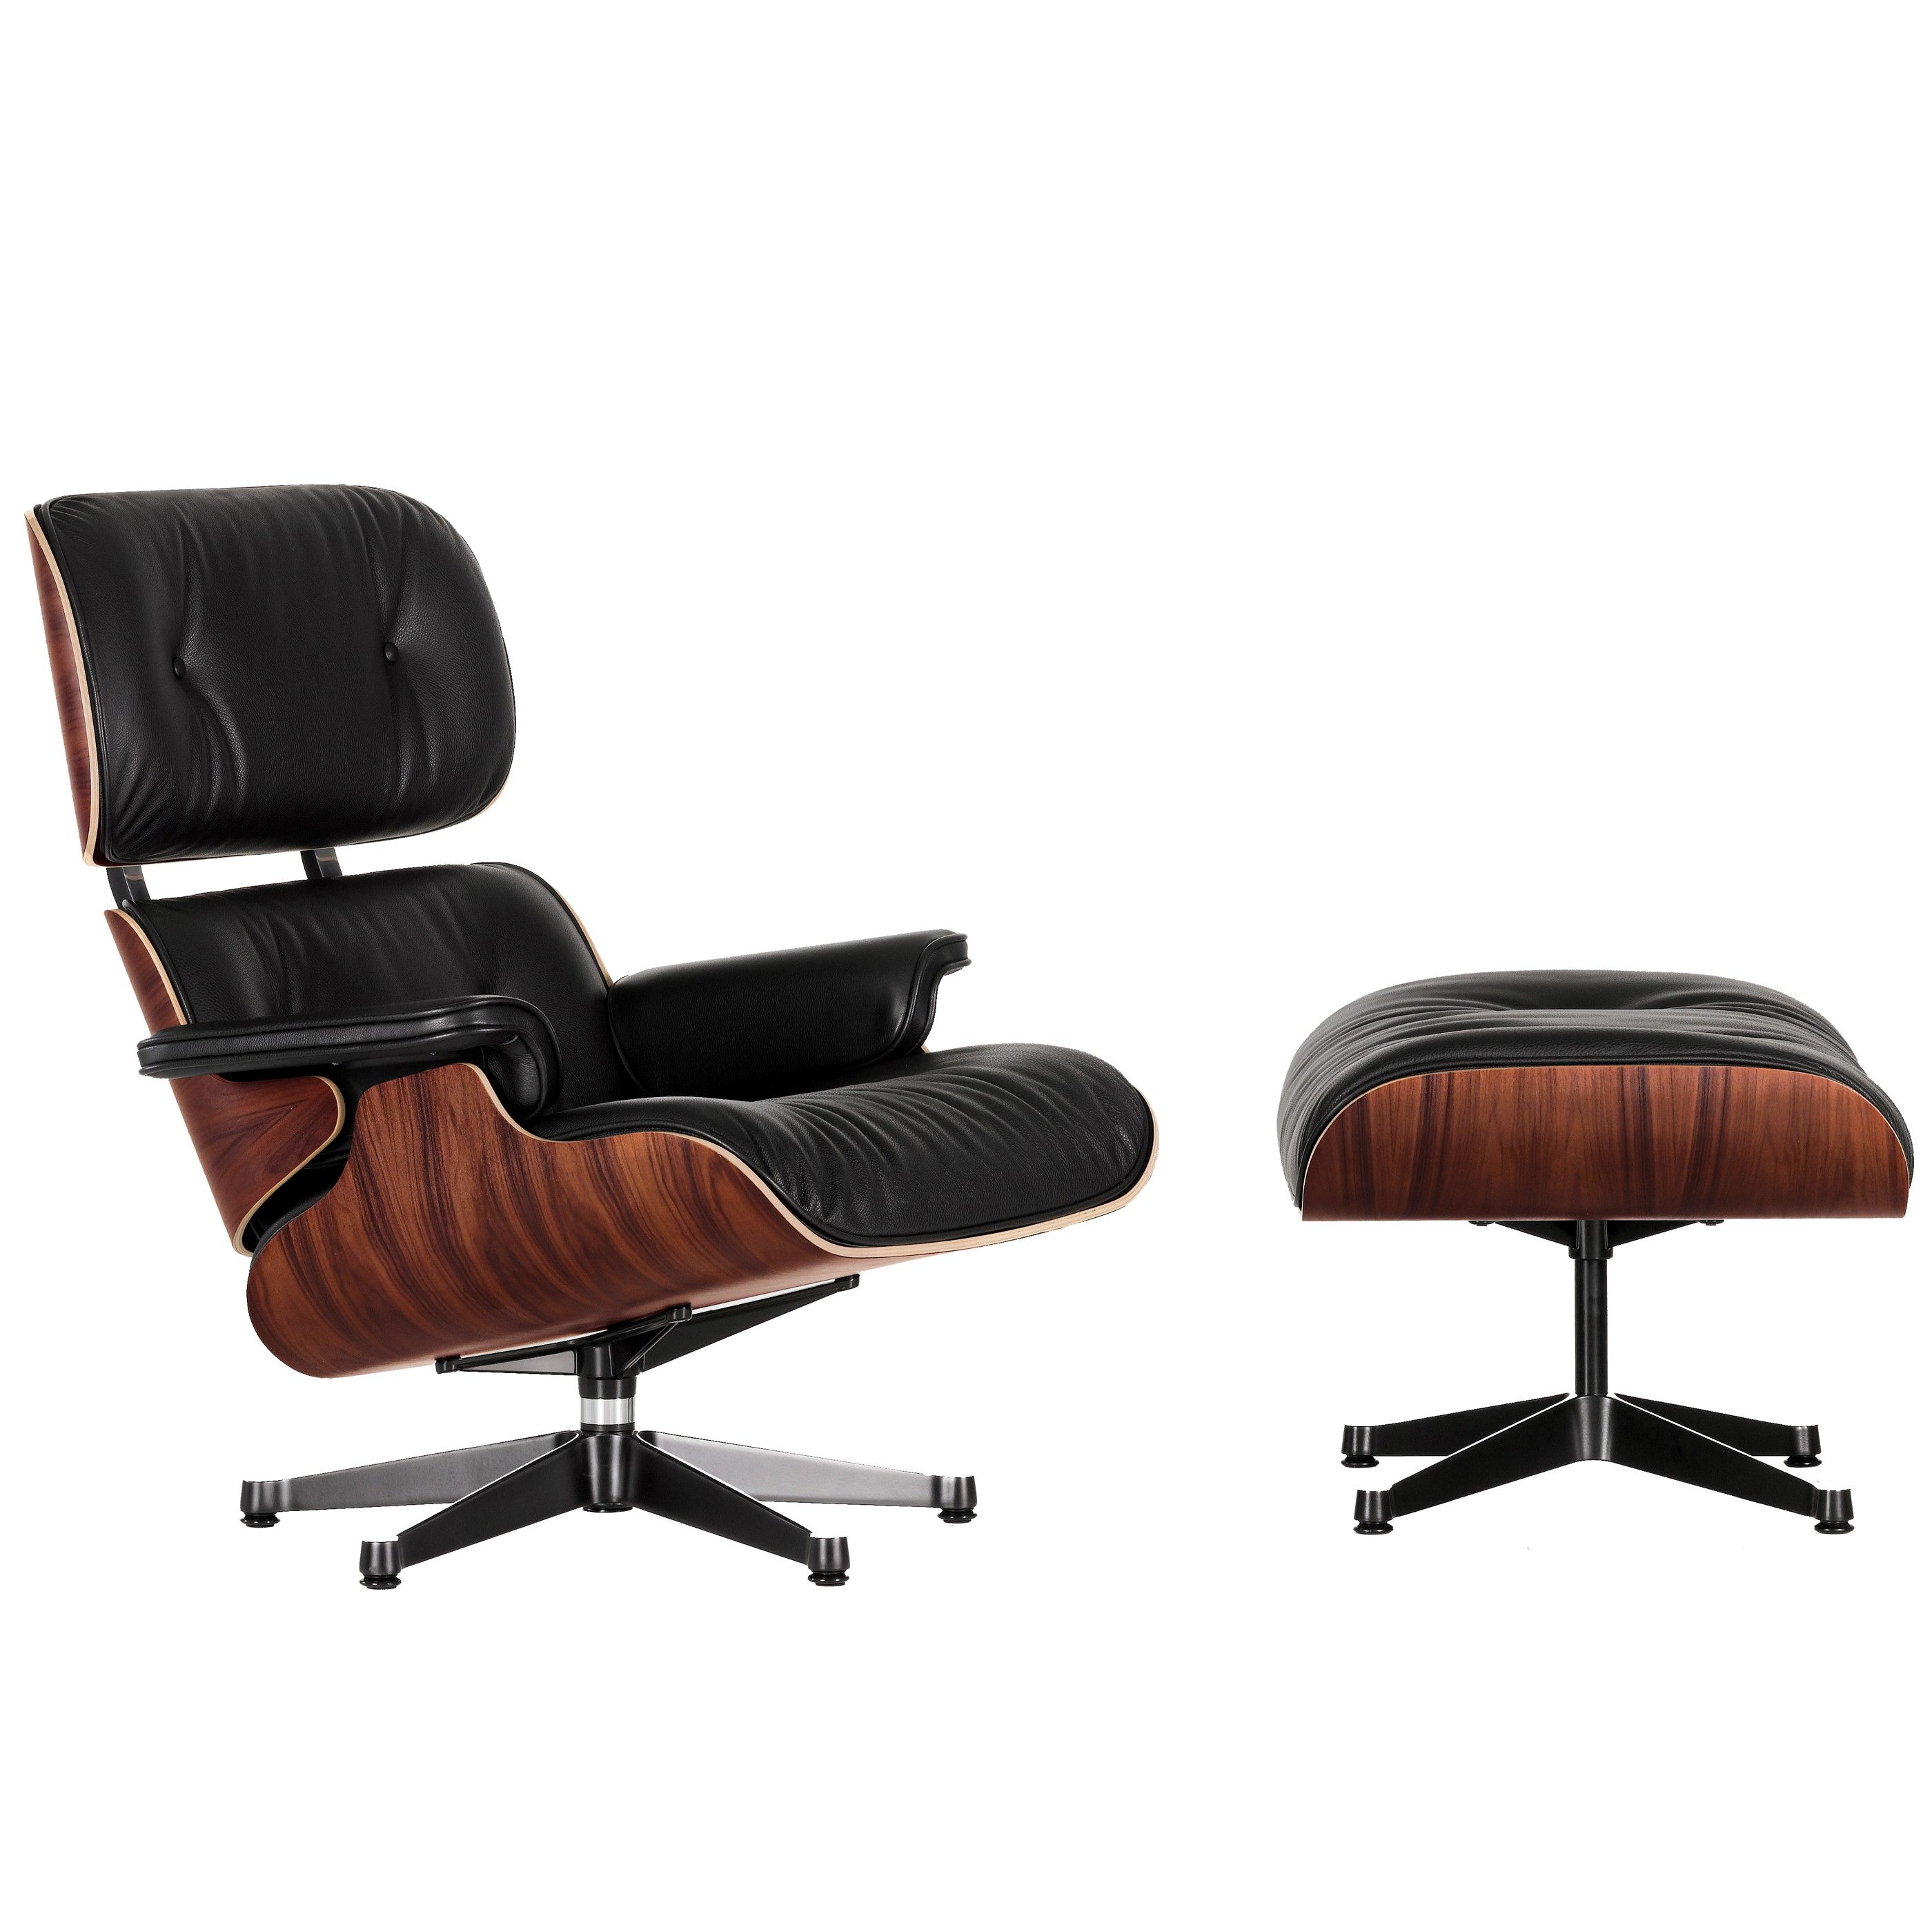 Vitra Eames Vitra Eames Lounge Chair Met Ottoman Fauteuil Nieuwe